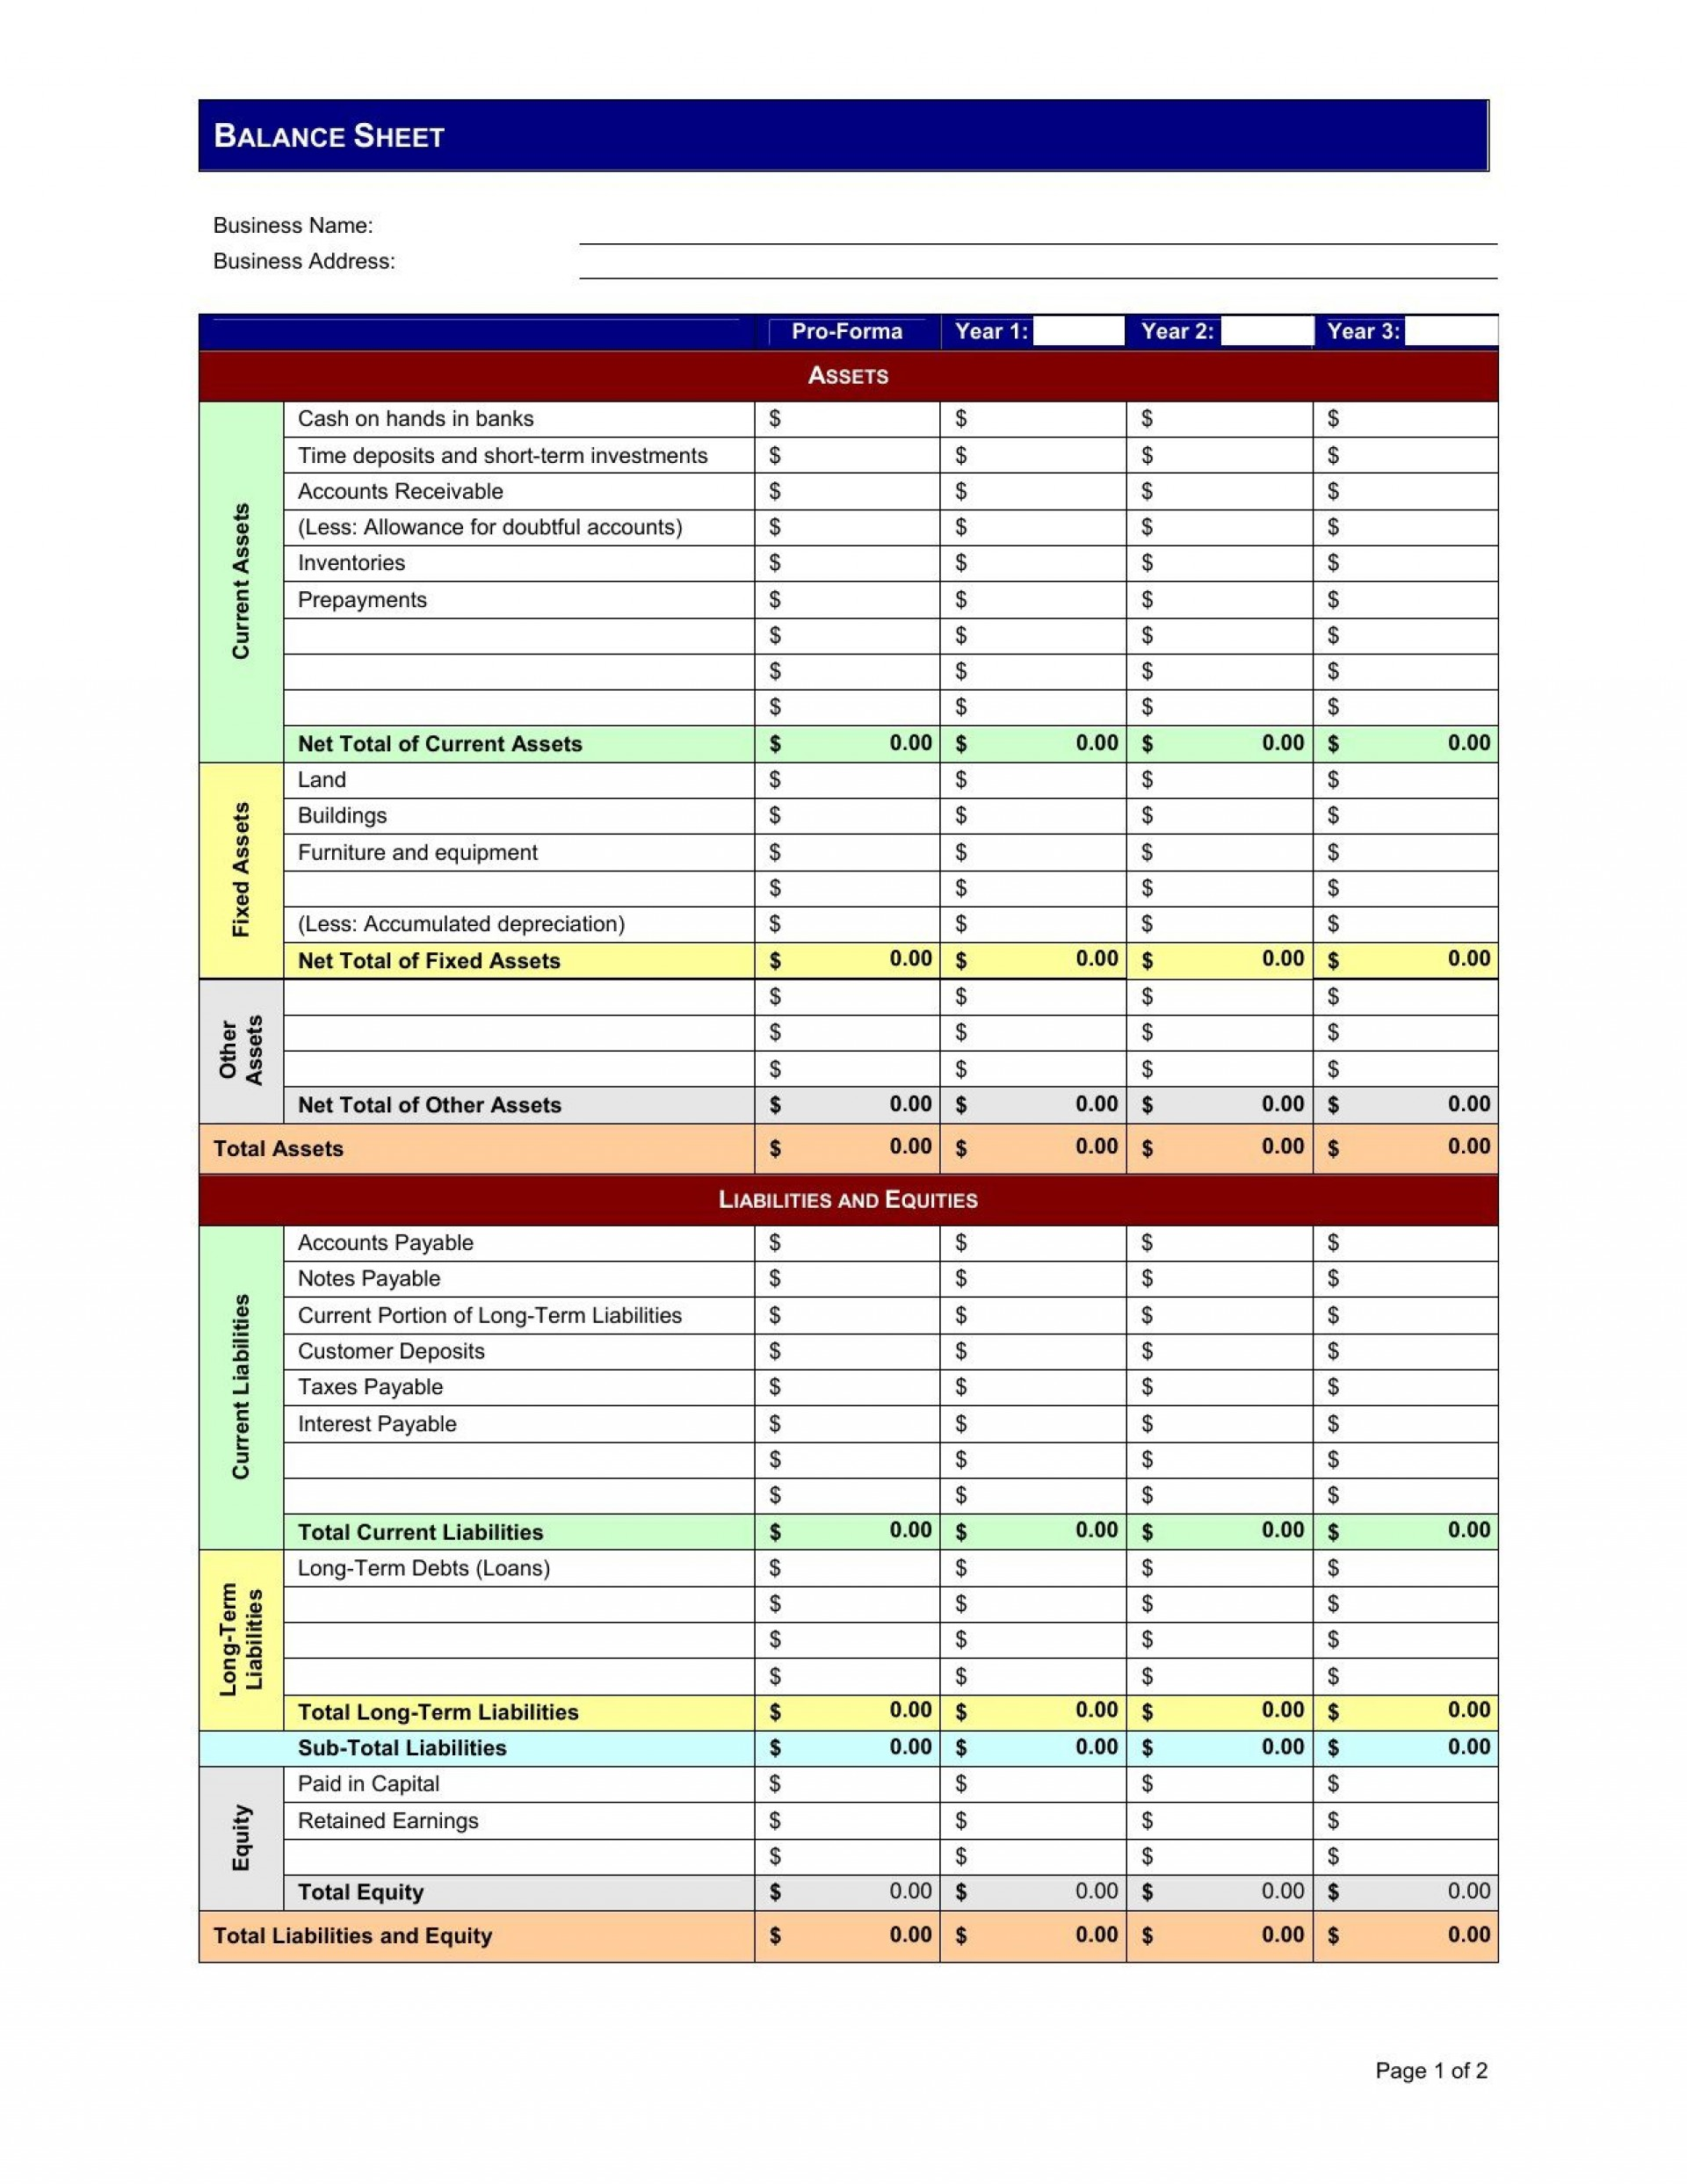 002 Breathtaking Pro Forma Balance Sheet Template Highest Clarity  Sample Free Example Excel1920